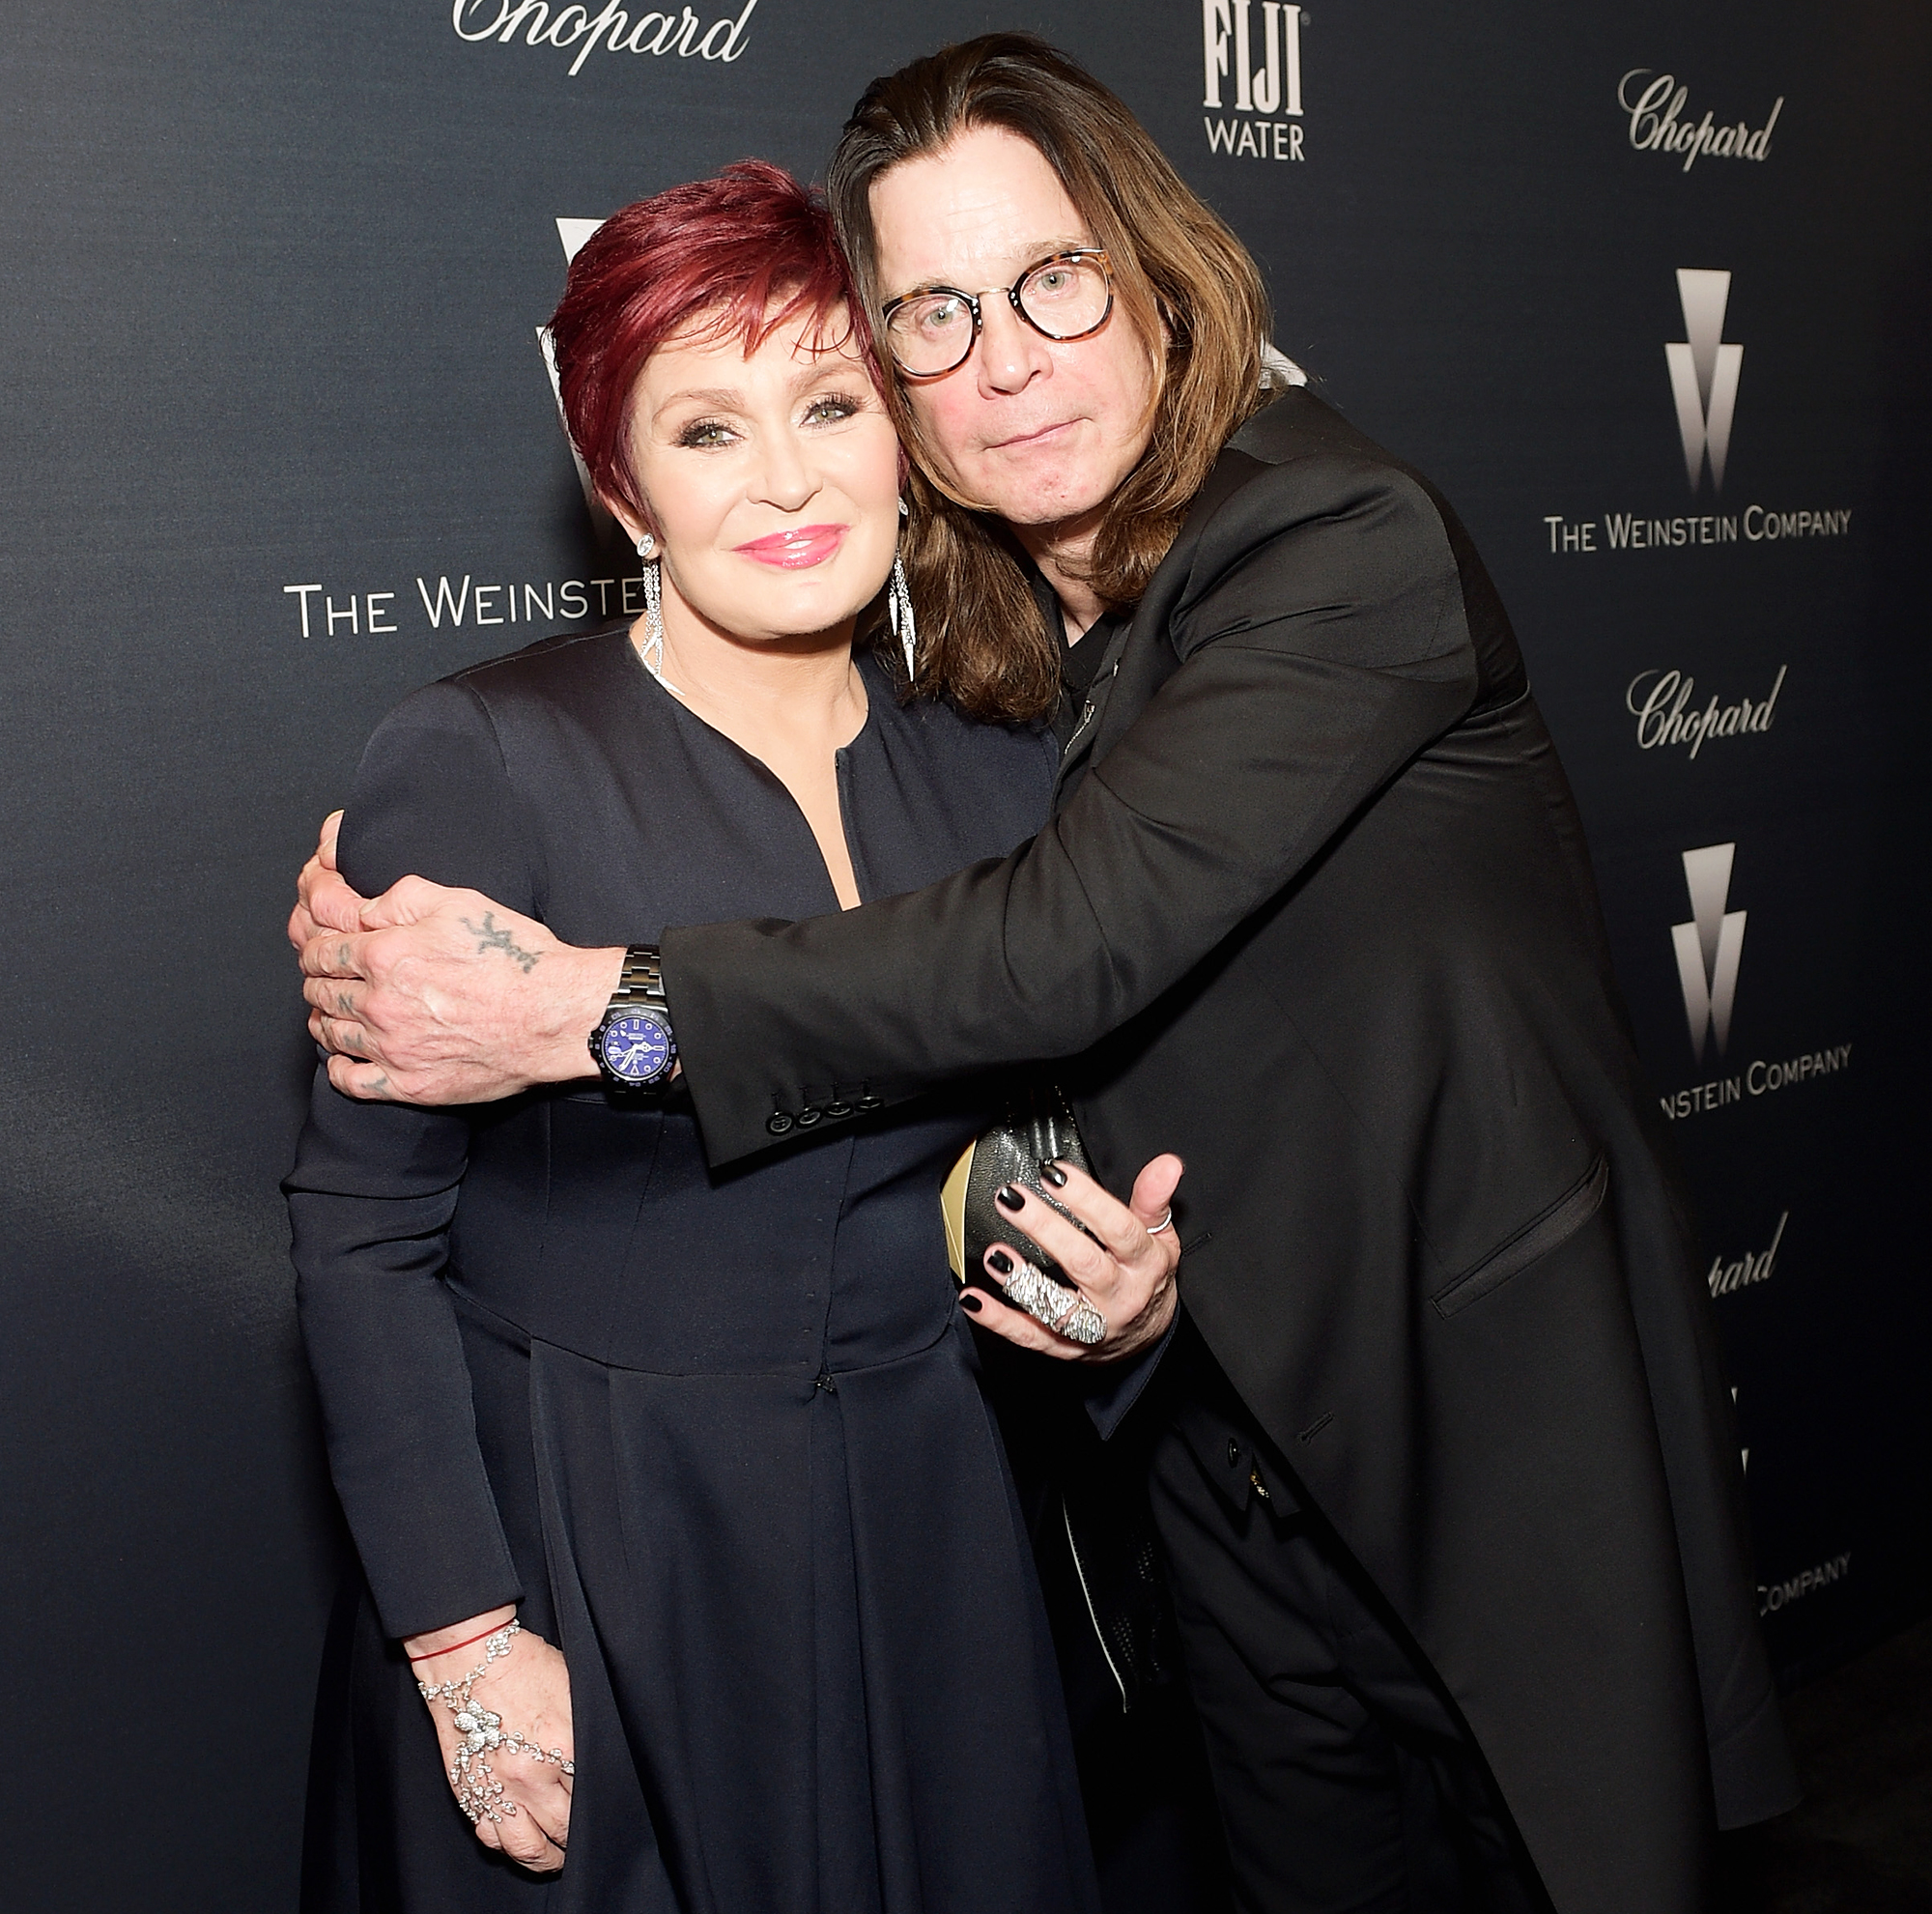 Kelly Osbourne Sharon Ozzy Anniversary Forever Love - Sharon Osbourne and Ozzy Osbourne attend The Weinstein Company's Academy Awards Nominees Dinner in partnership with Chopard, DeLeon Tequila, FIJI Water and MAC Cosmetics on February 21, 2015 in Los Angeles, California.